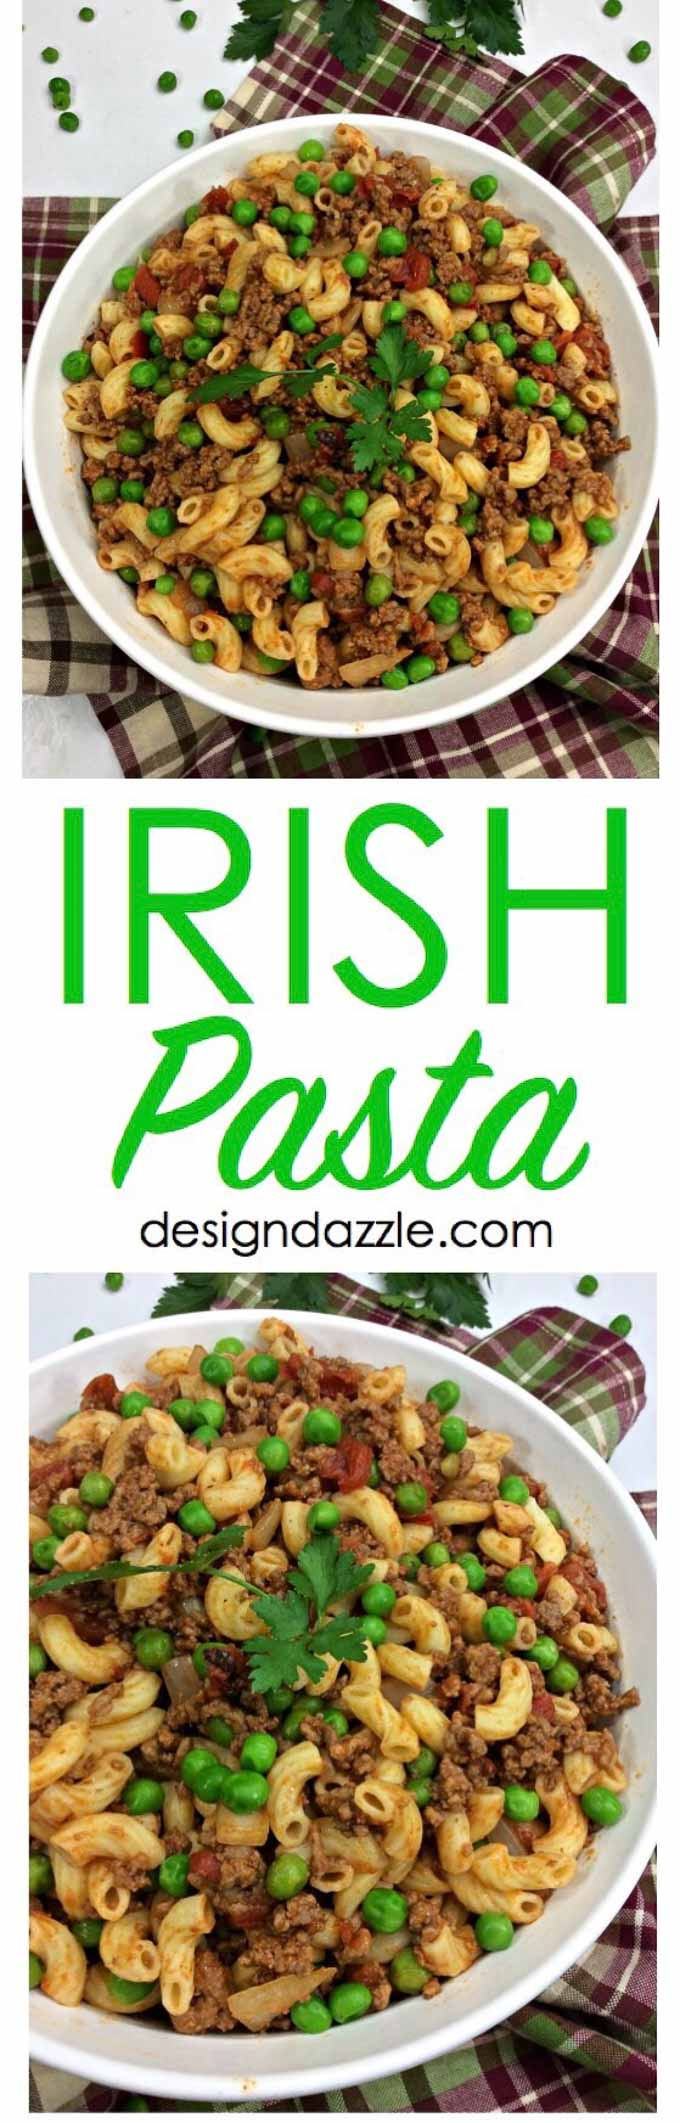 This Perfect Irish Pasta recipe is colorful, delicious, and a great way to celebrate St. Patricks day with your family! So try something new and make this delicious Irish Pasta recipe! | Design Dazzle